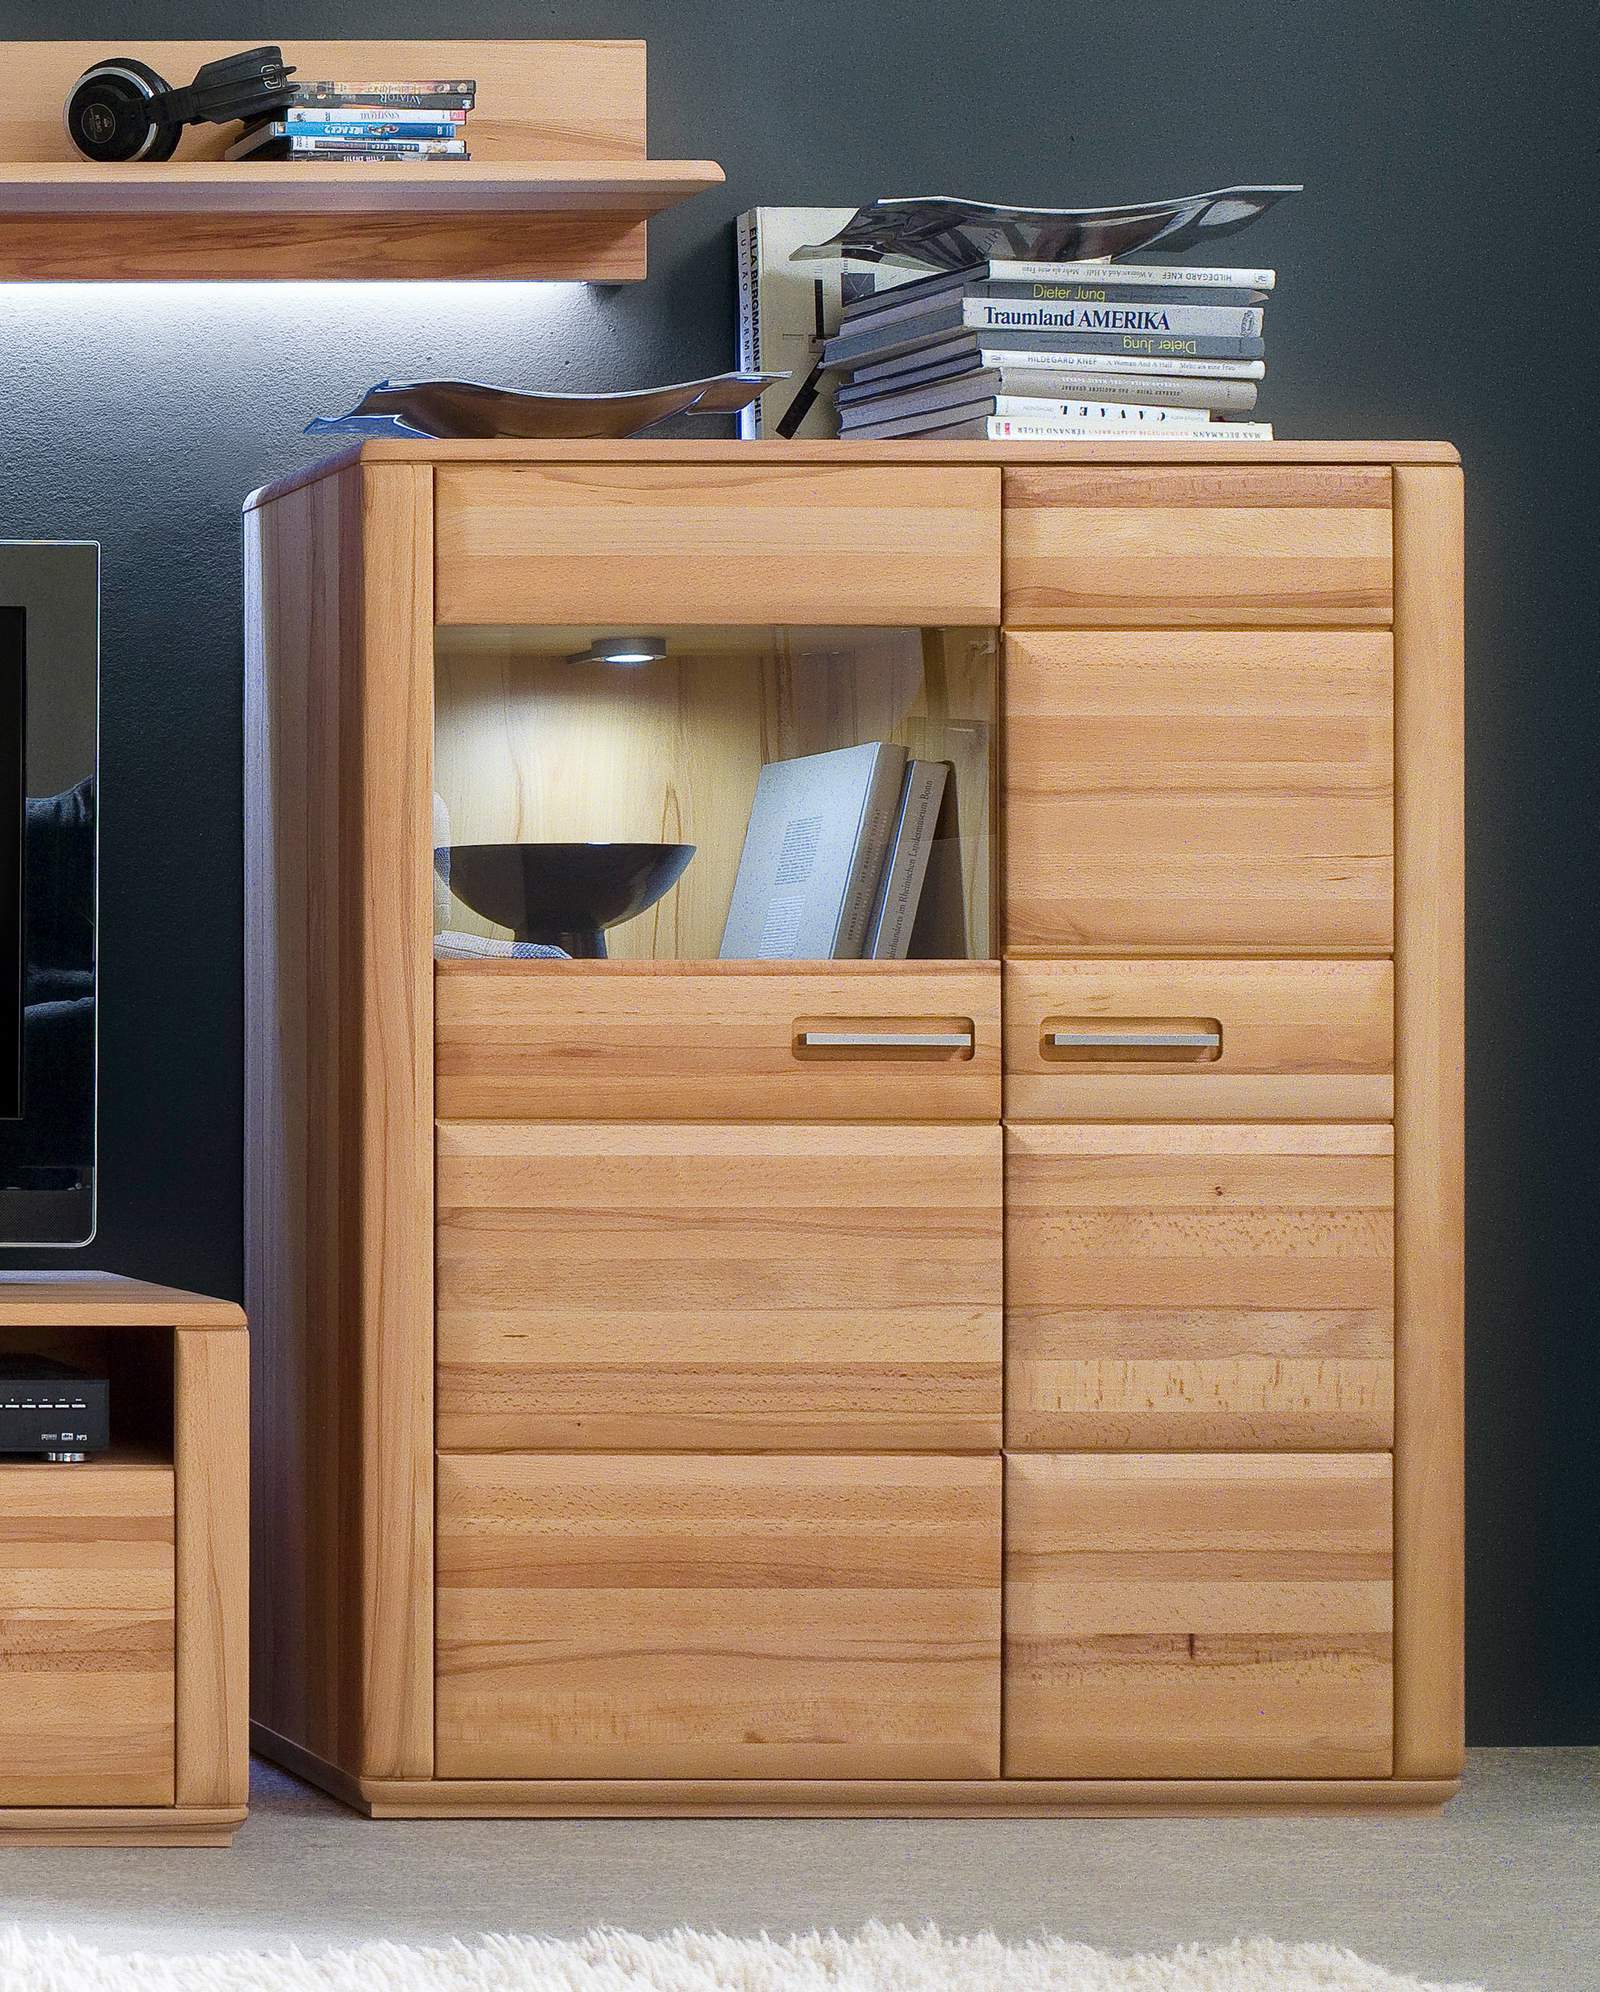 Highboard Kernbuche 107 cm rechts Sena MCA furniture | Wohnzimmer > Schränke > Highboards | MCA furniture